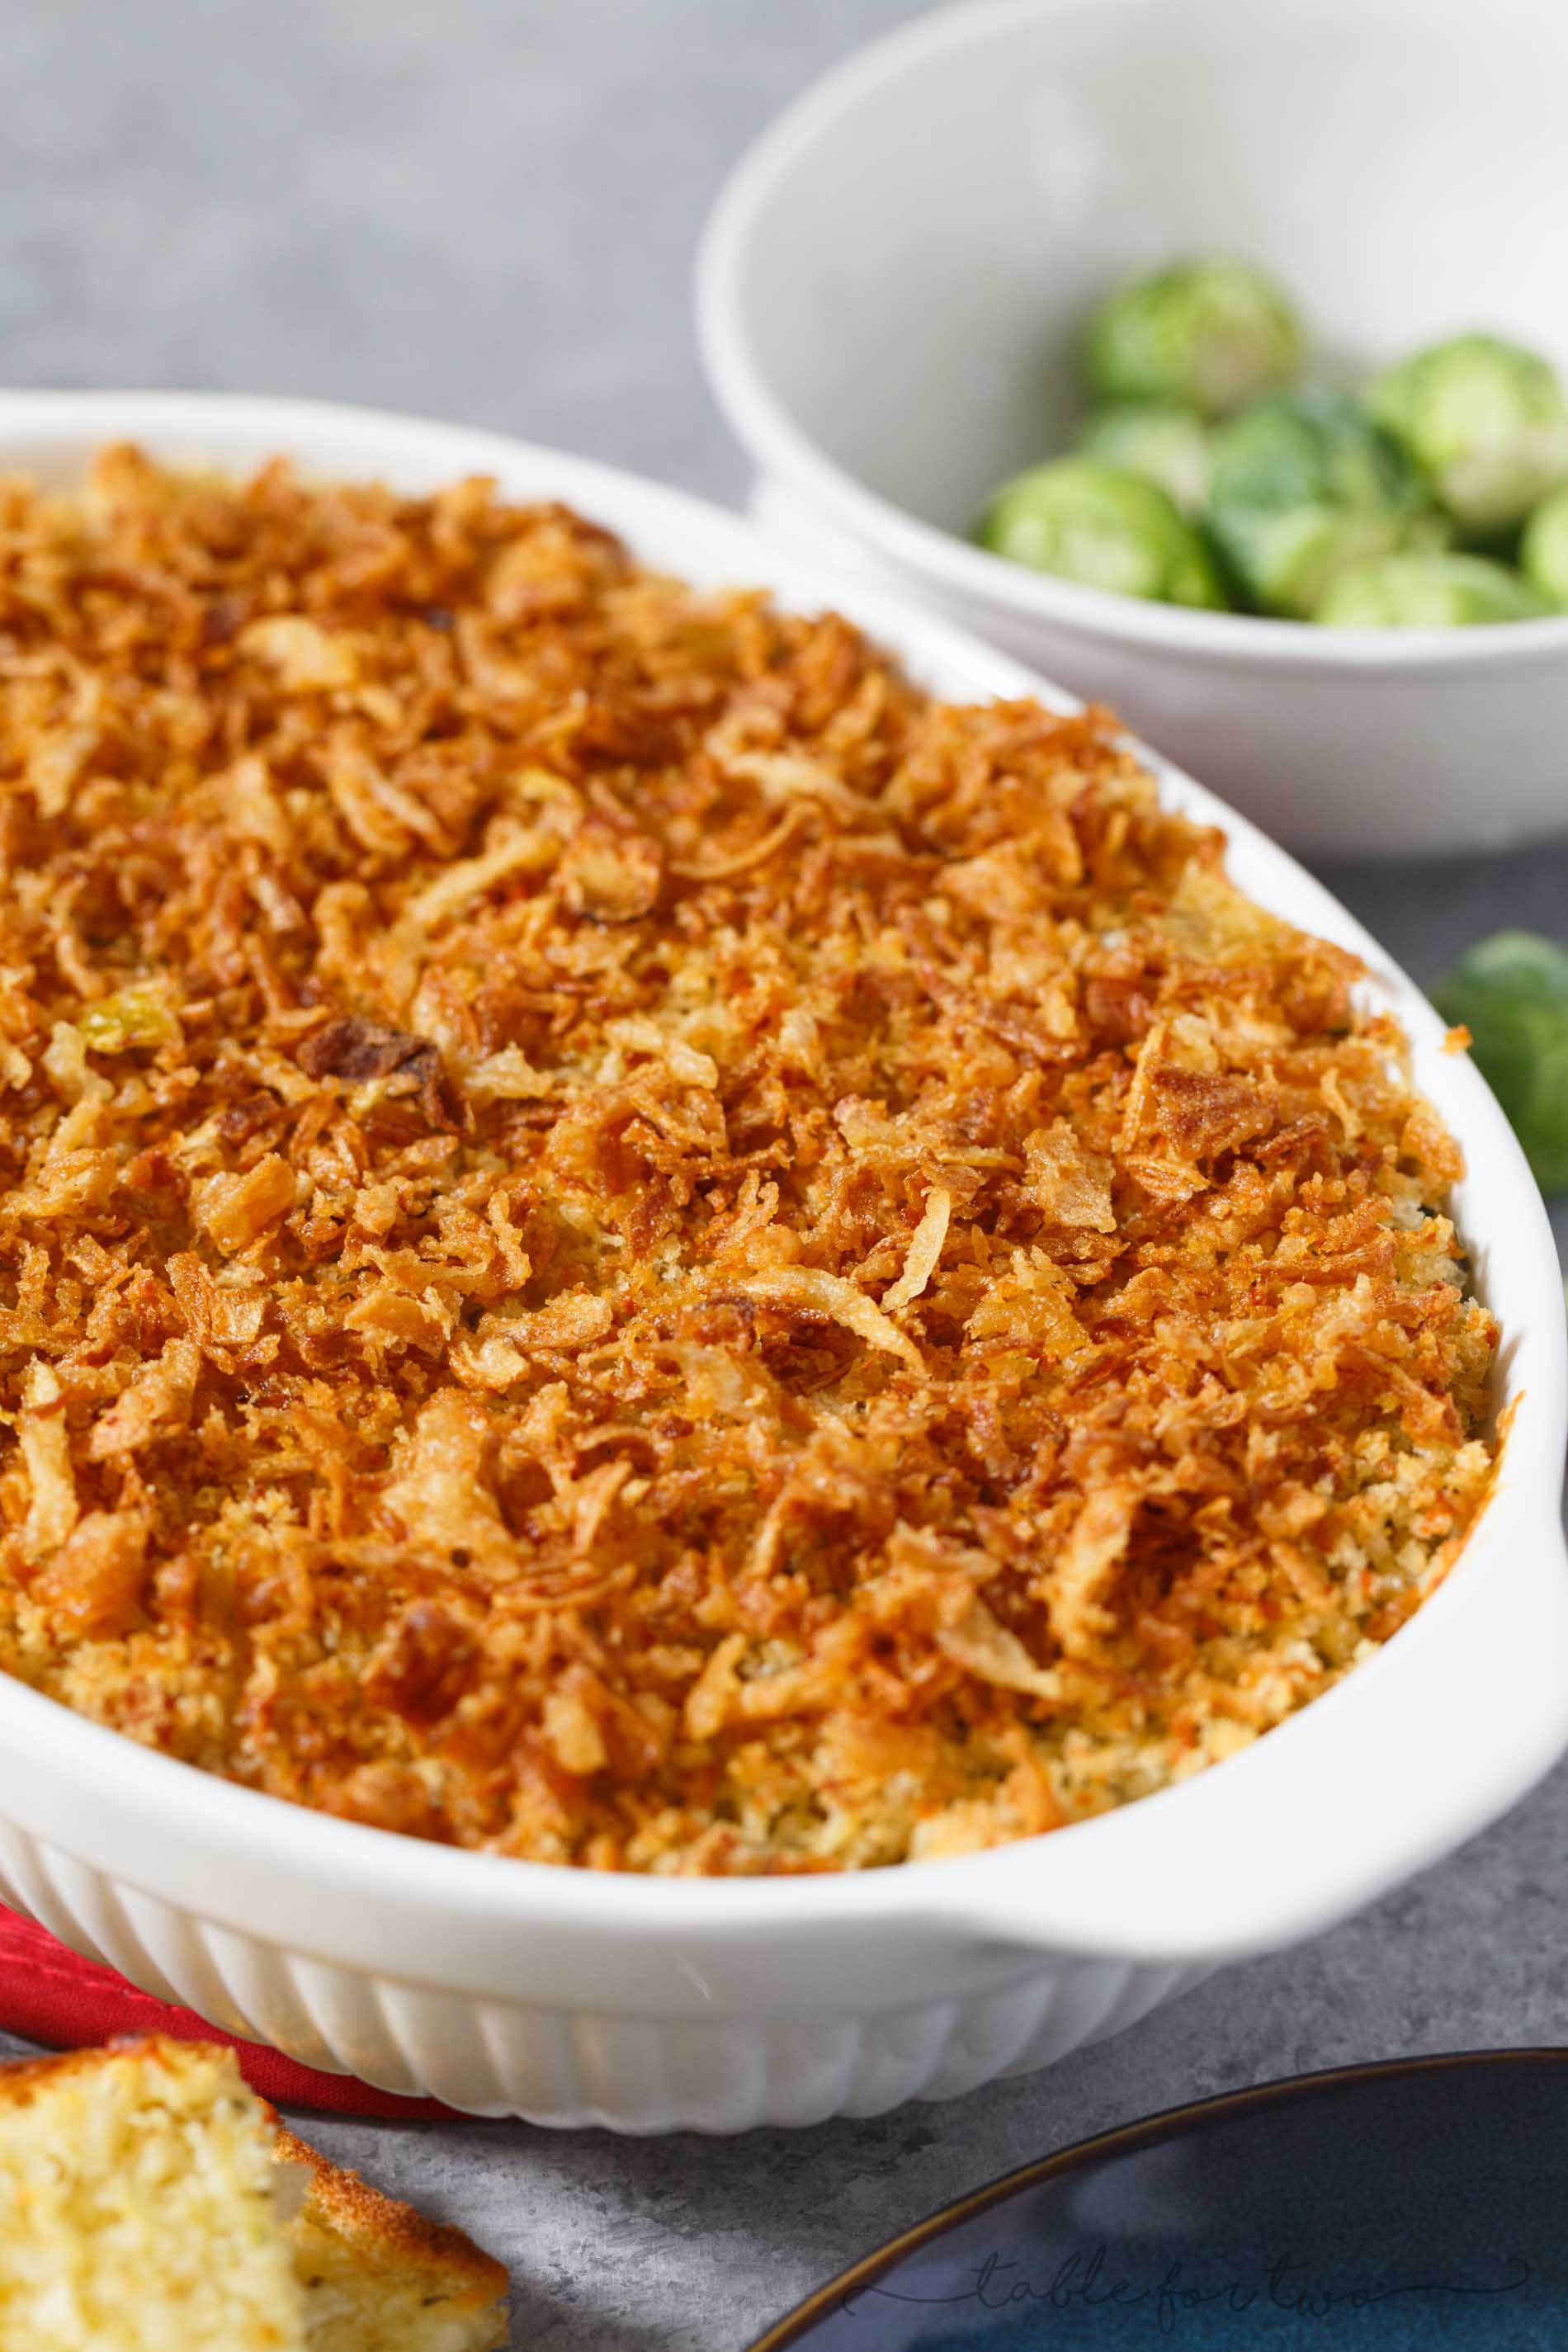 Pretty sure if you hate brussels sprouts, you haven't had them the right way. This roasted brussels sprouts gratin with garlic crumble and fried onion topping is going to elevate your side dish game at any party or potluck AND you will fall in love with brussels sprouts all over again! PROMISE!